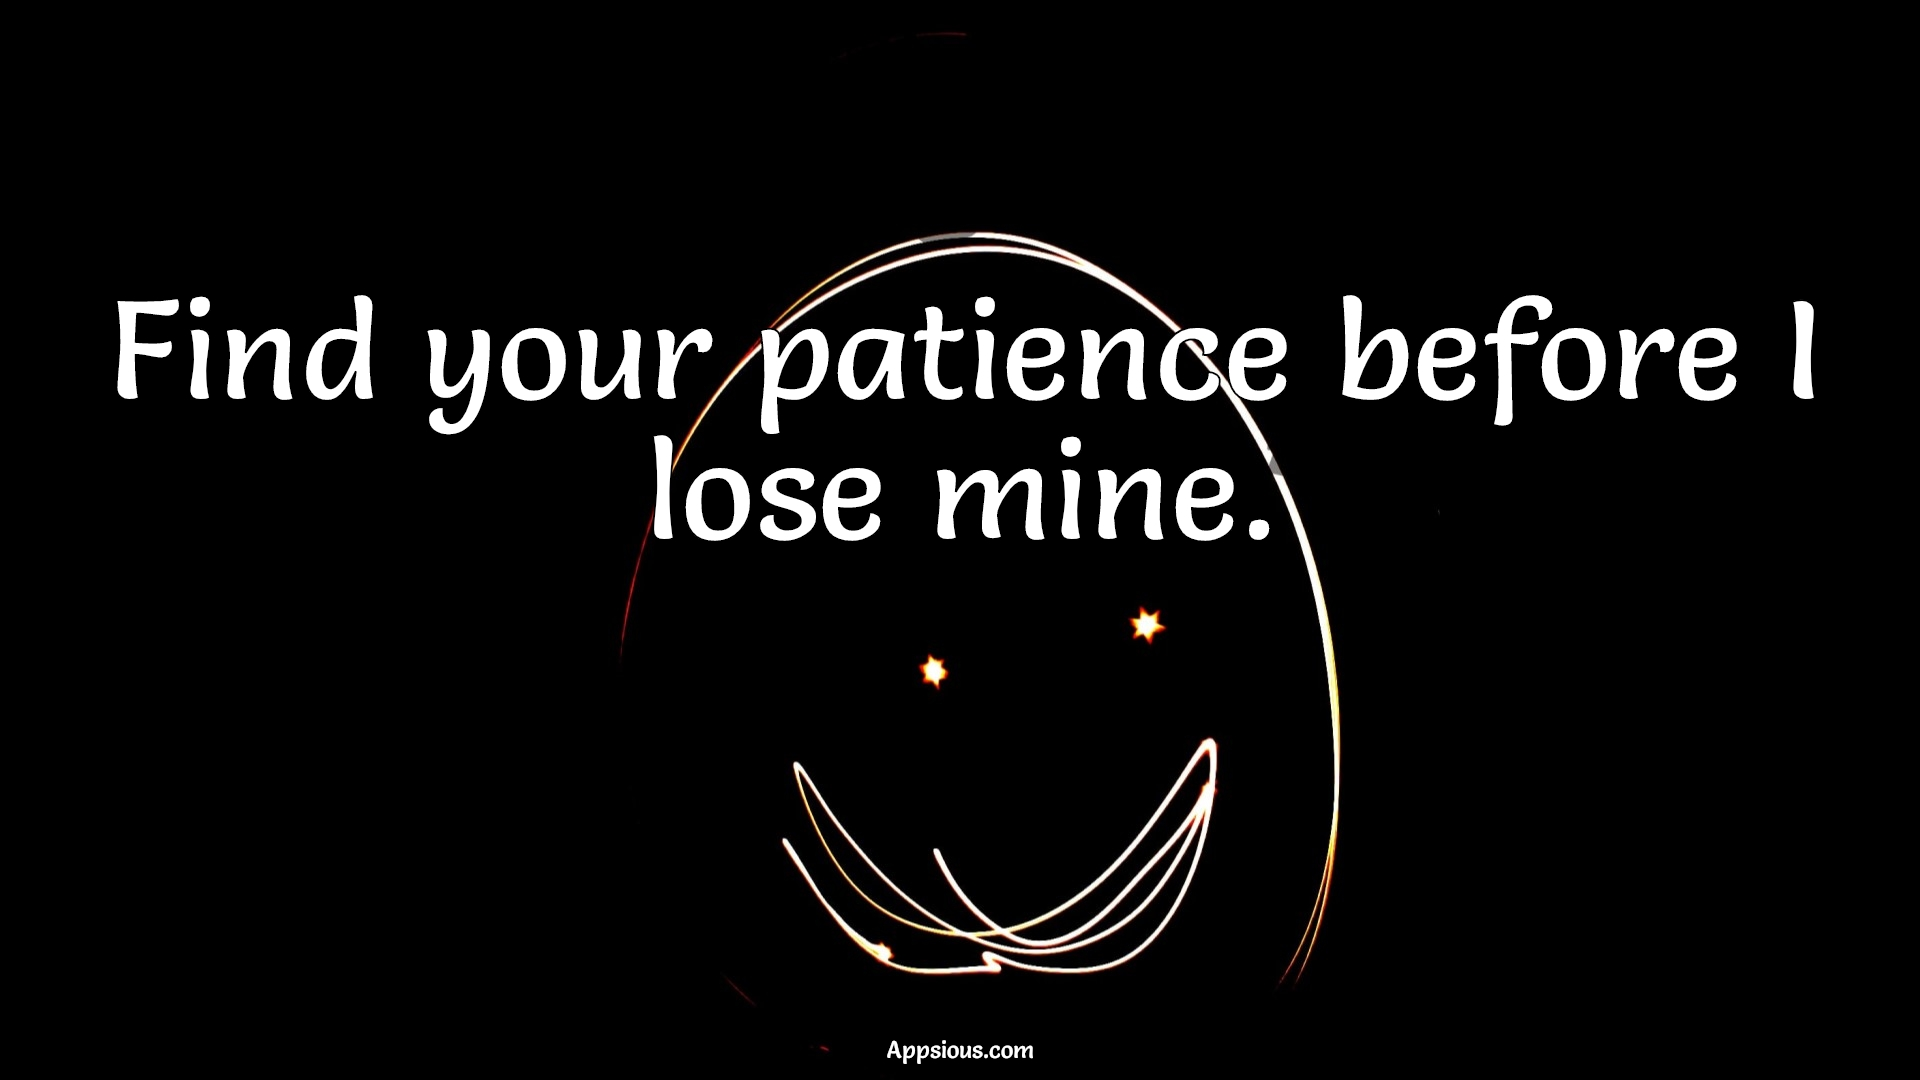 Find your patience before I lose mine.